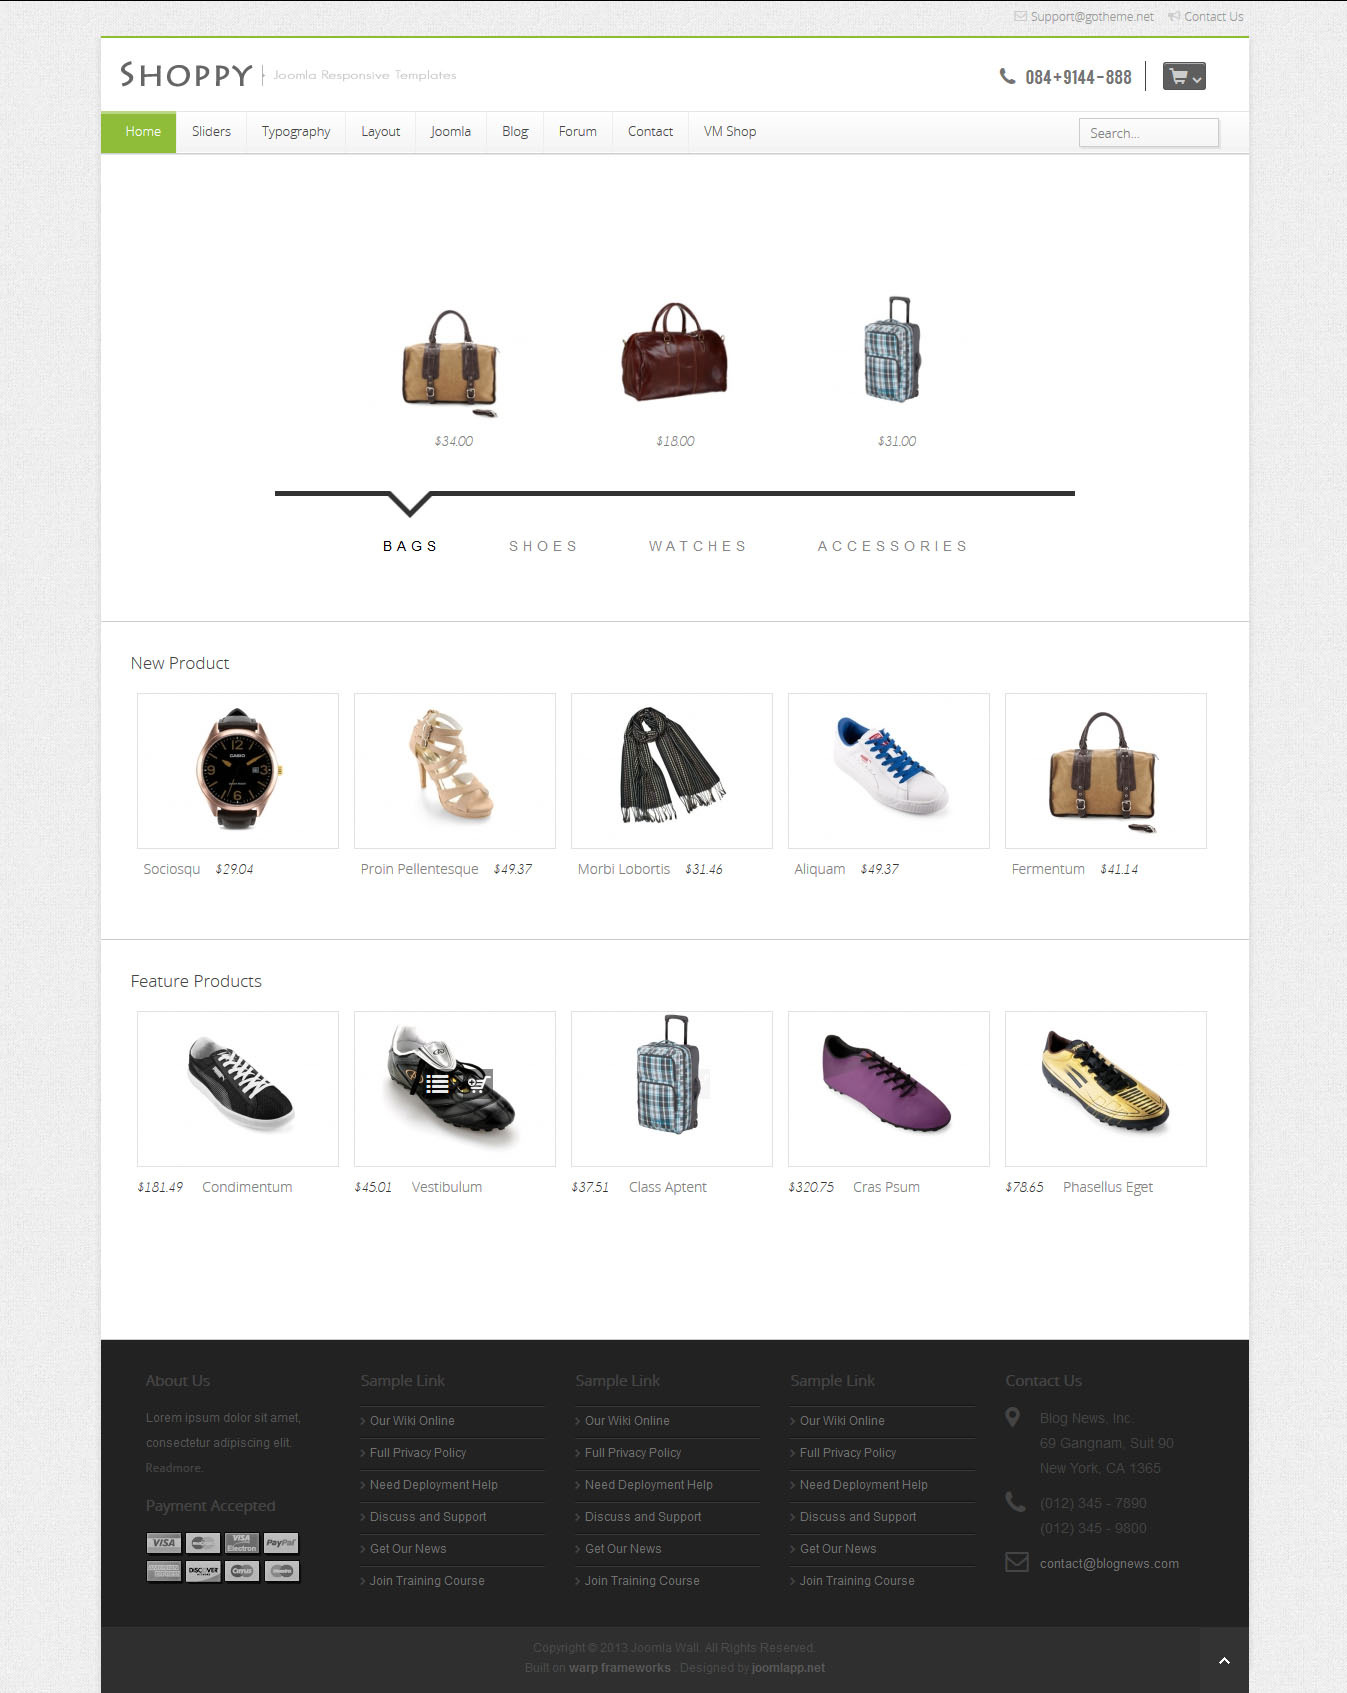 GT04 - Virtuemart Shop - Joomla Responsive Themes